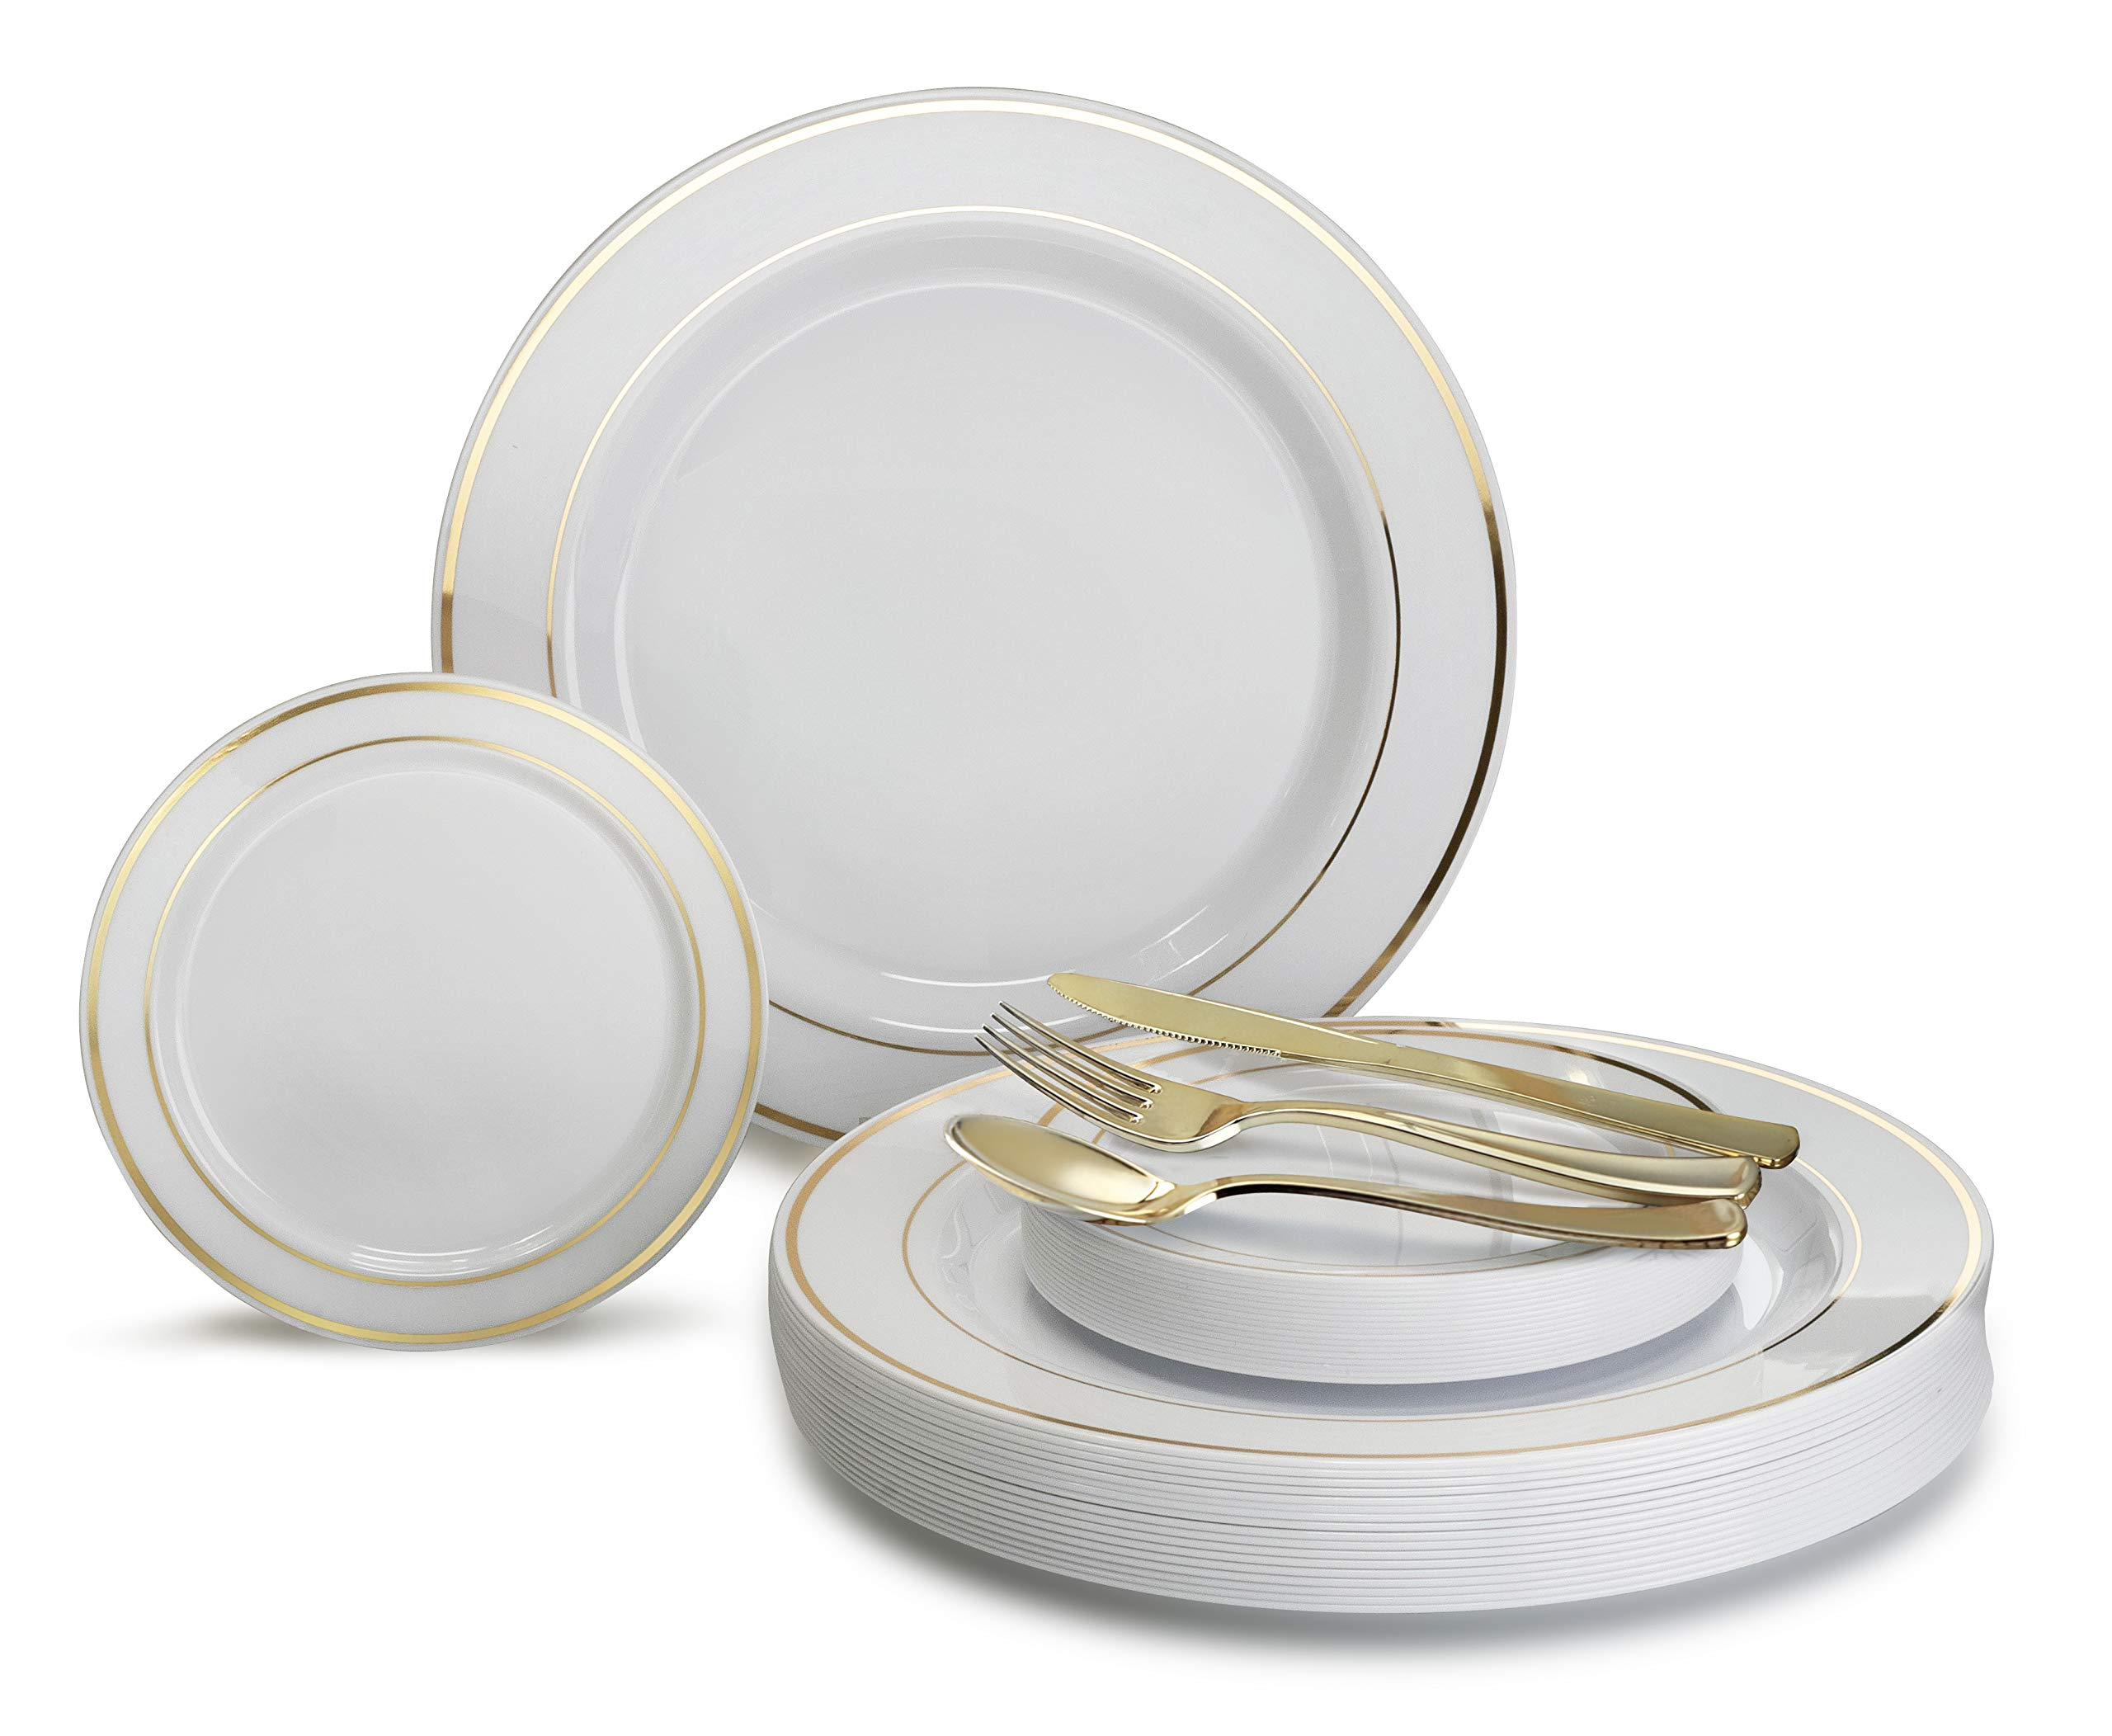 '' OCCASIONS'' 600 PCS / 120 GUEST Wedding Disposable Plastic Plate and Silverware Combo Set, (White/Gold Rim plates, Gold silverware) by OCCASIONS FINEST PLASTIC TABLEWARE (Image #2)